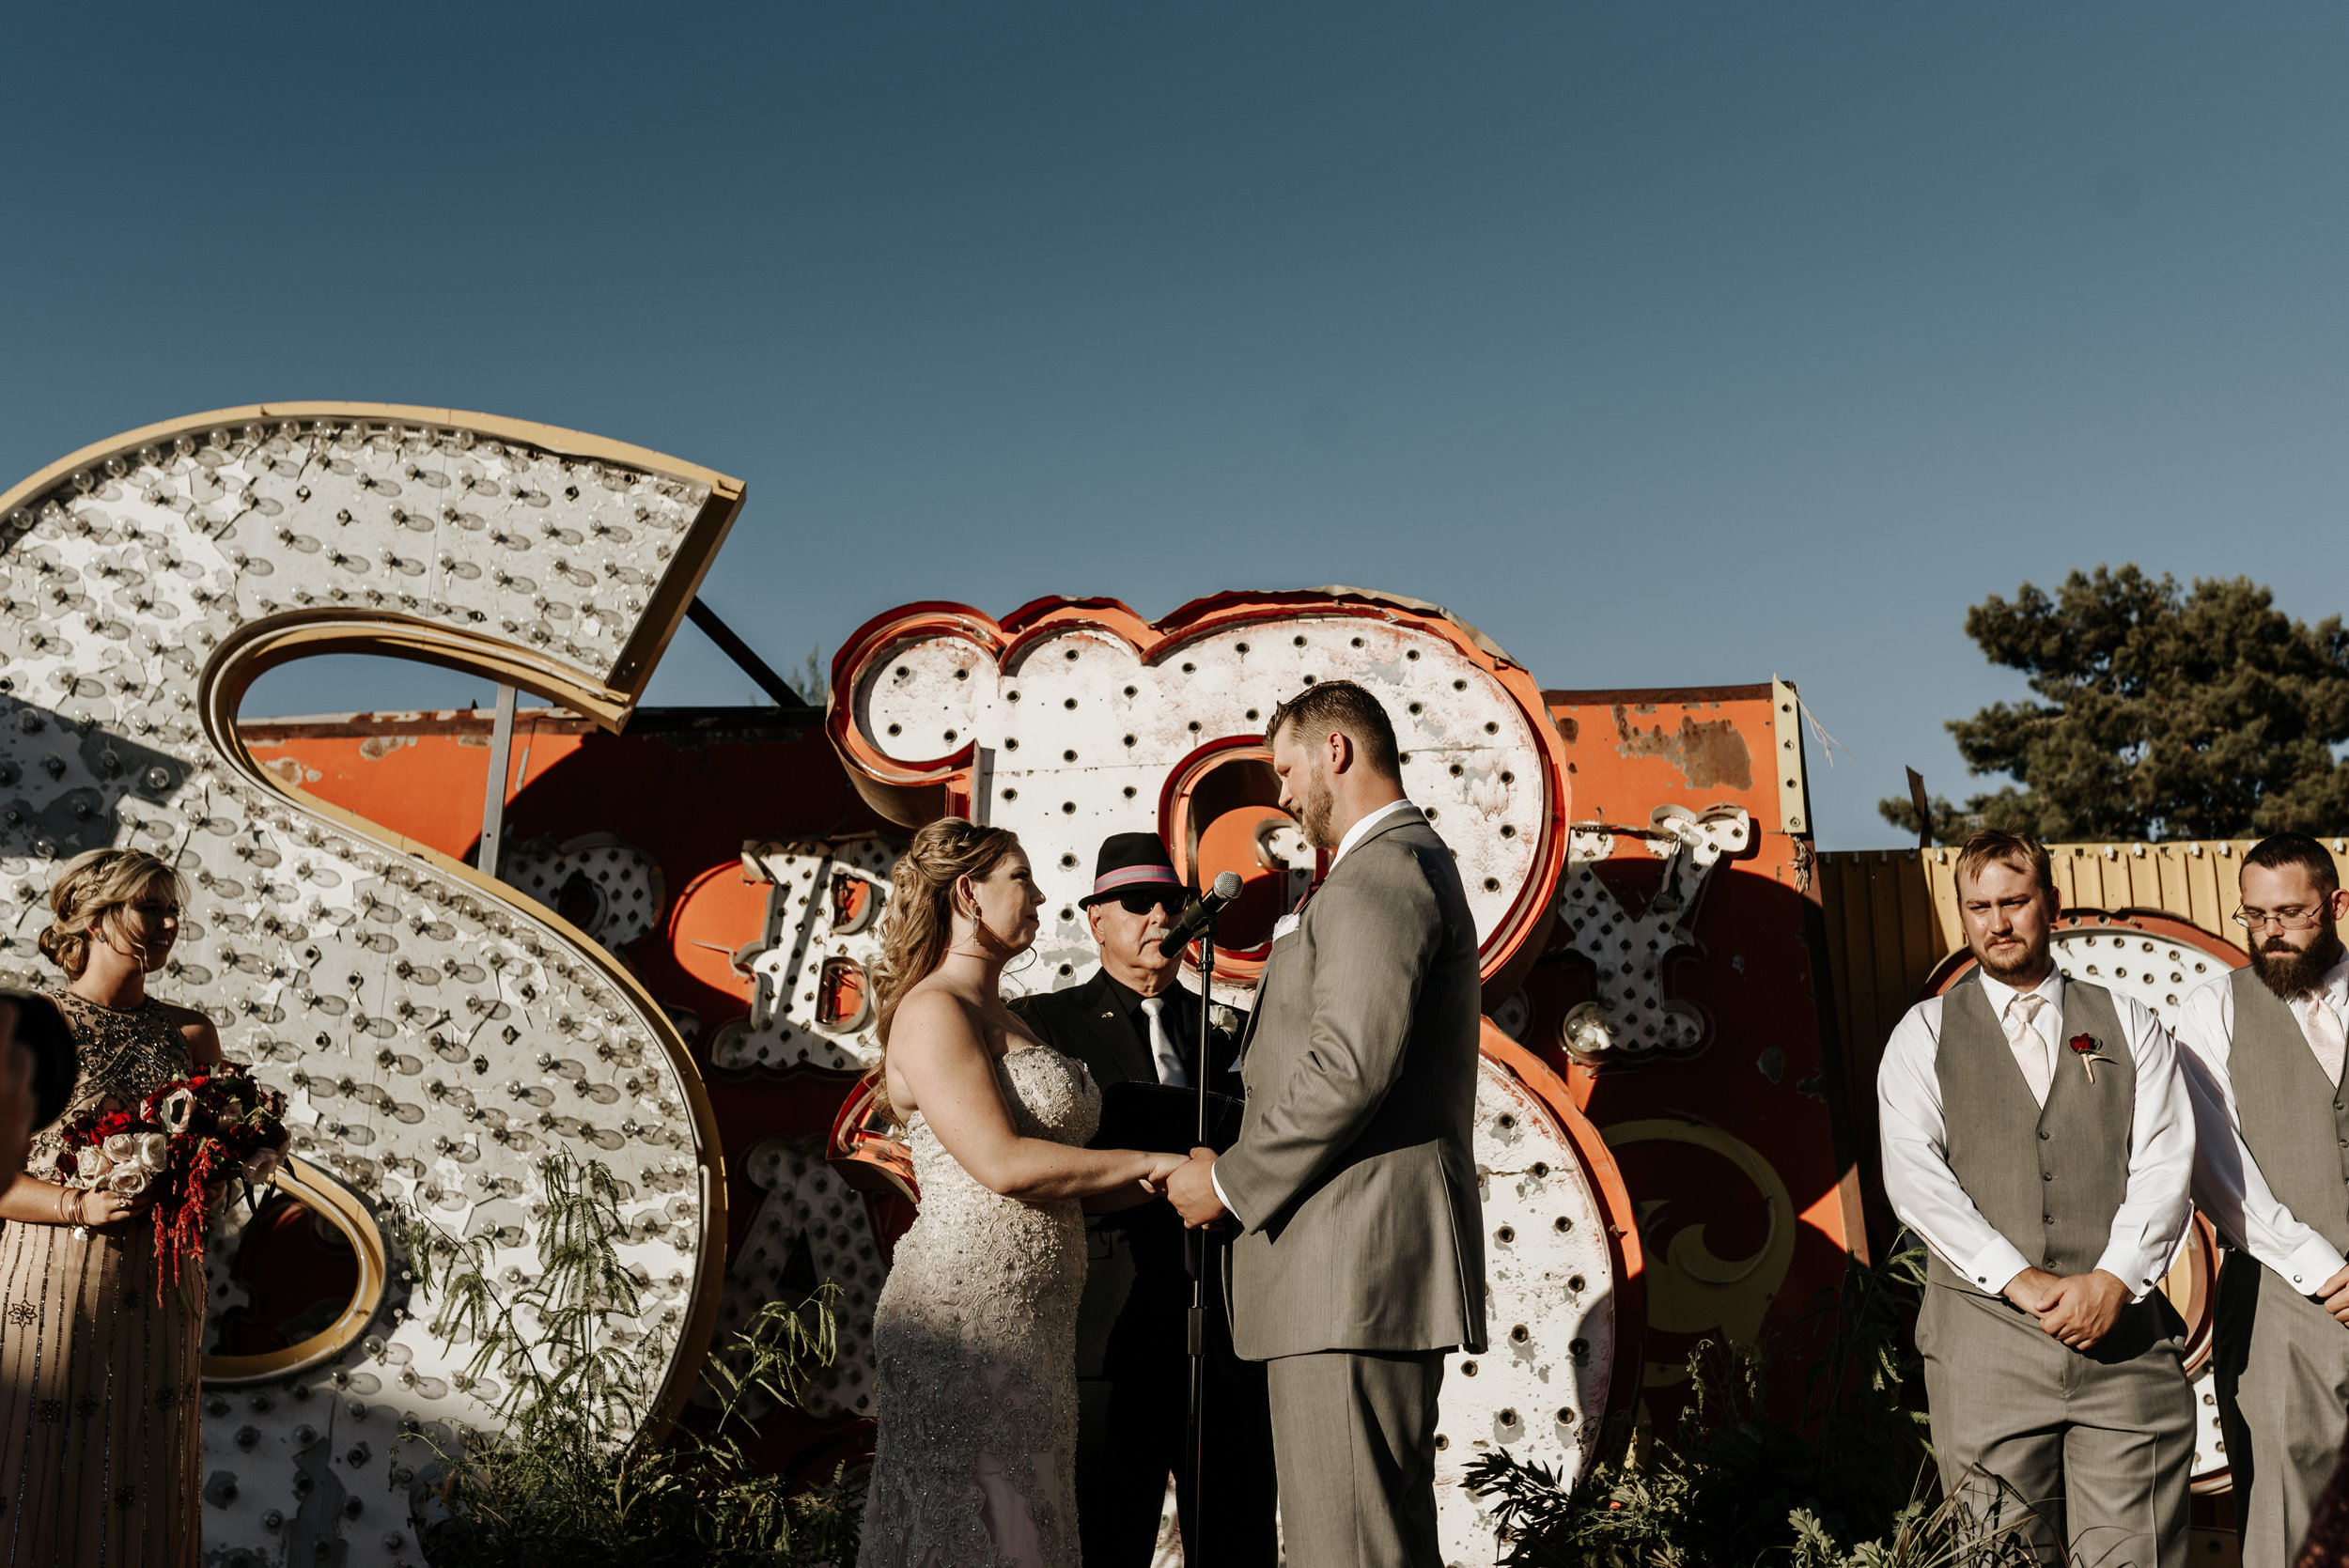 Neon-Museum-Wedding-Las-Vegas-Nevada-Golden-Nugget-Photography-by-V-Ally-and-Dan-2902.jpg